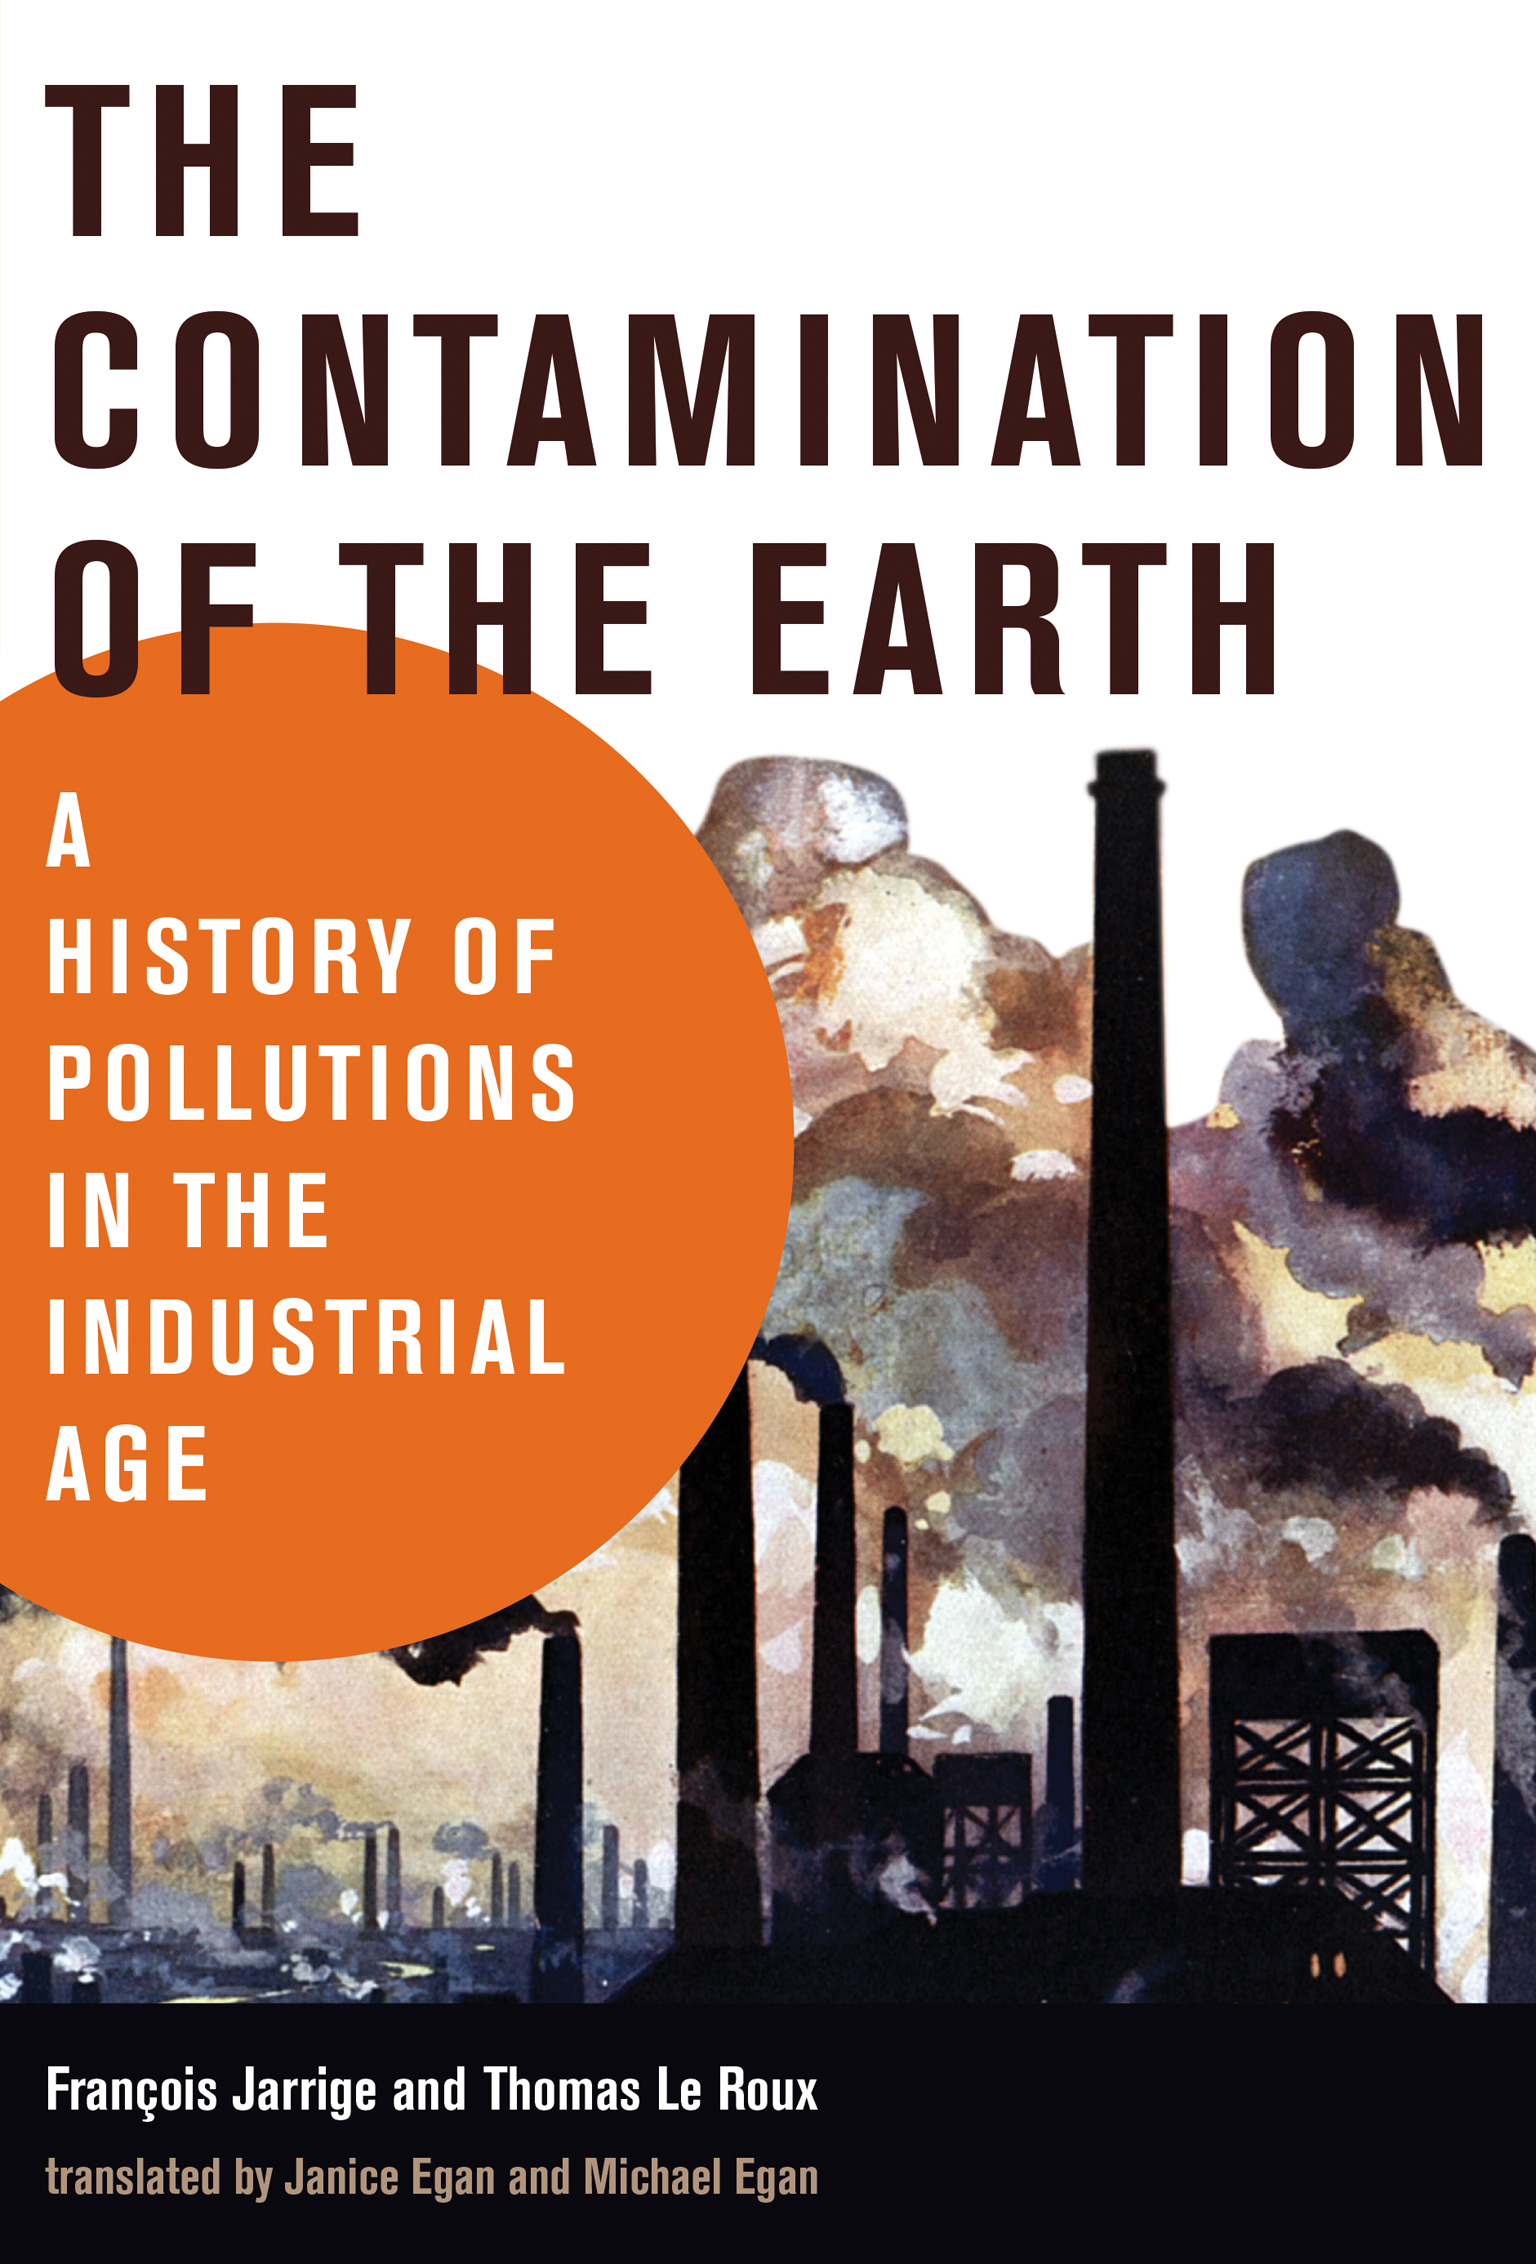 The Contamination of the Earth